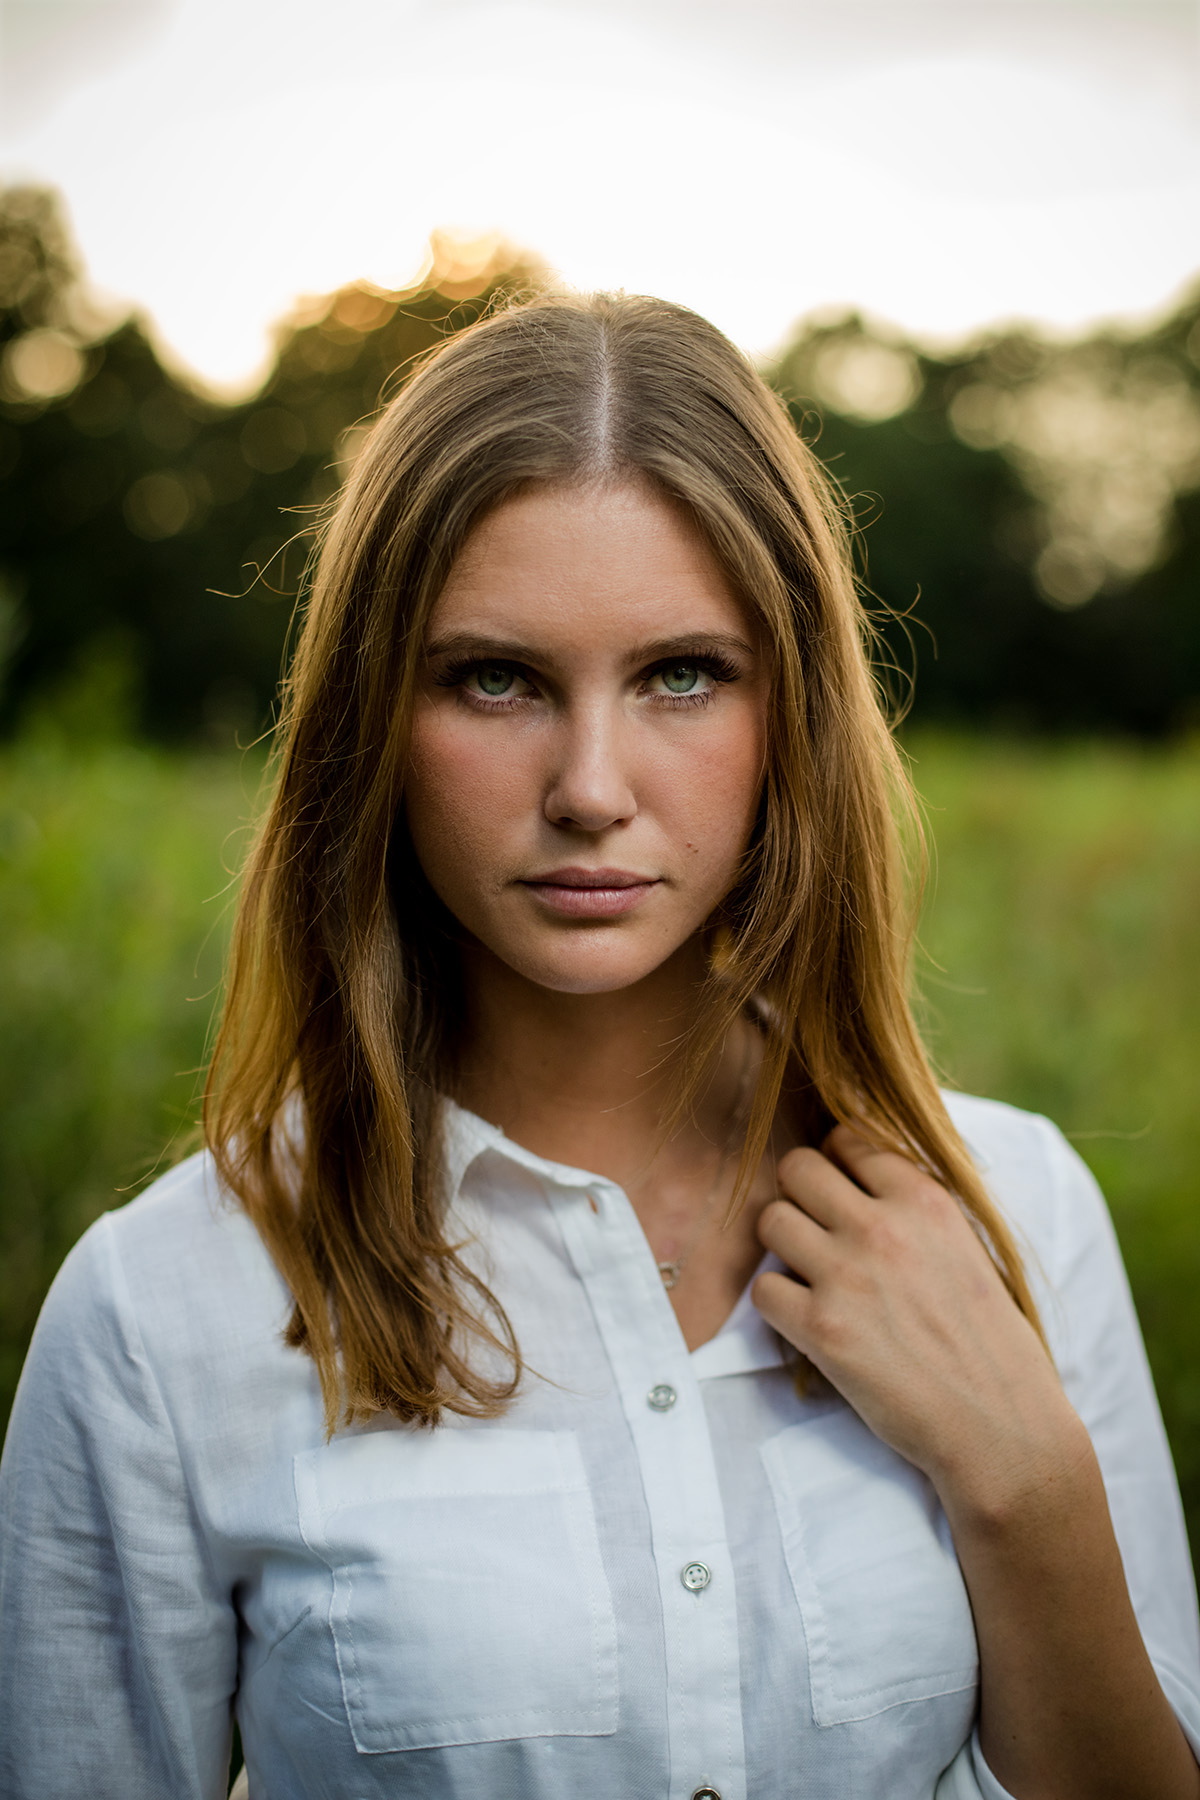 Beautyshooting; Beauty; Portrait; Sommer; Sunset; Fashion